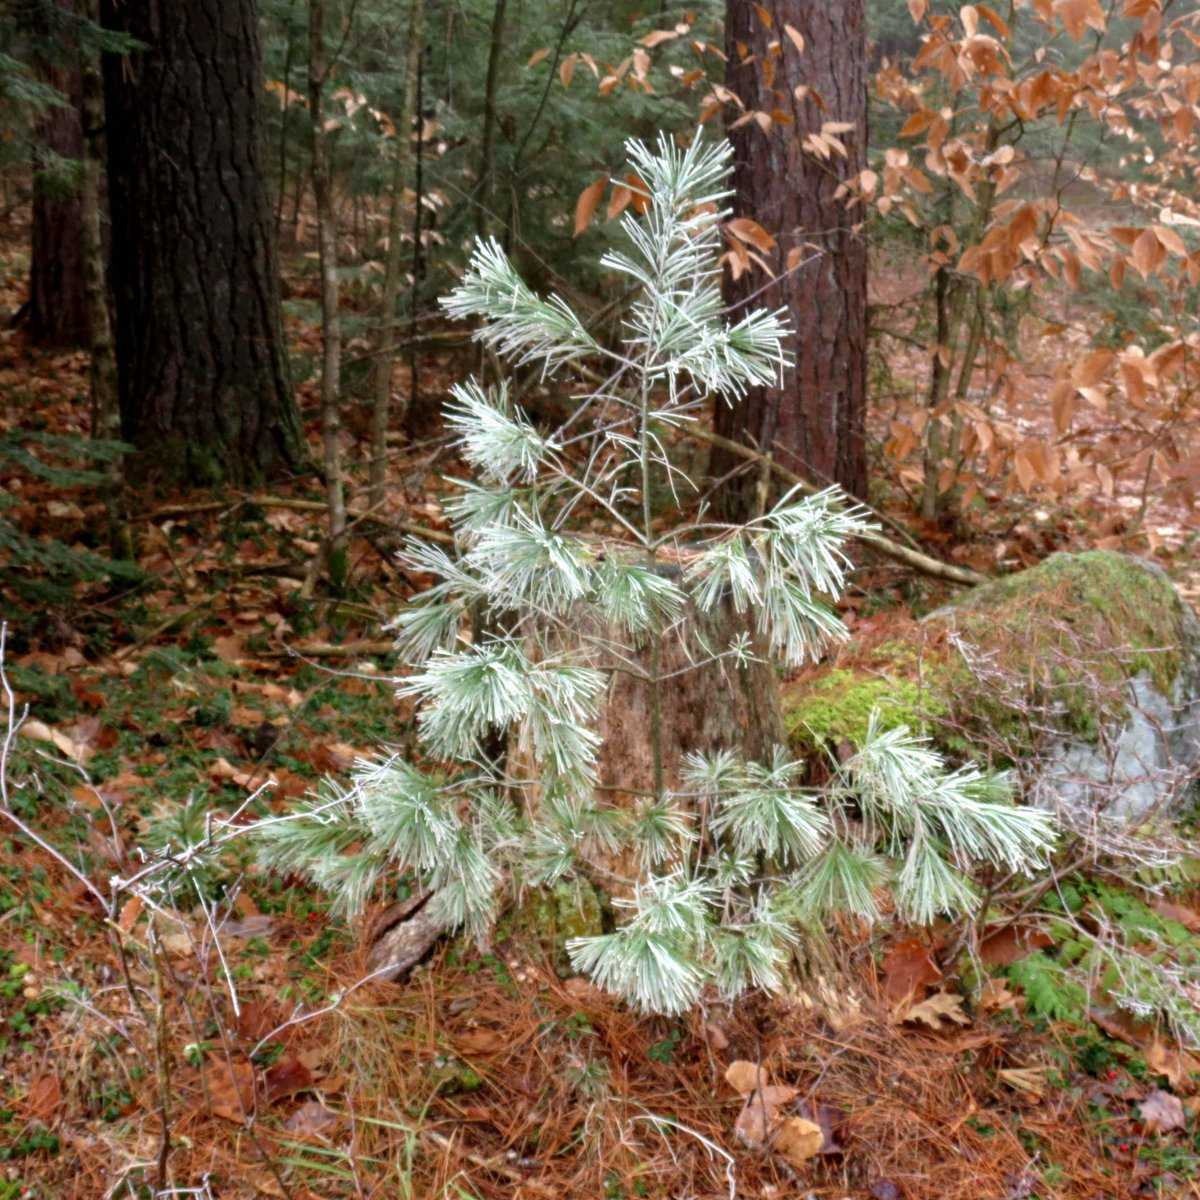 5. Frosted White Pine